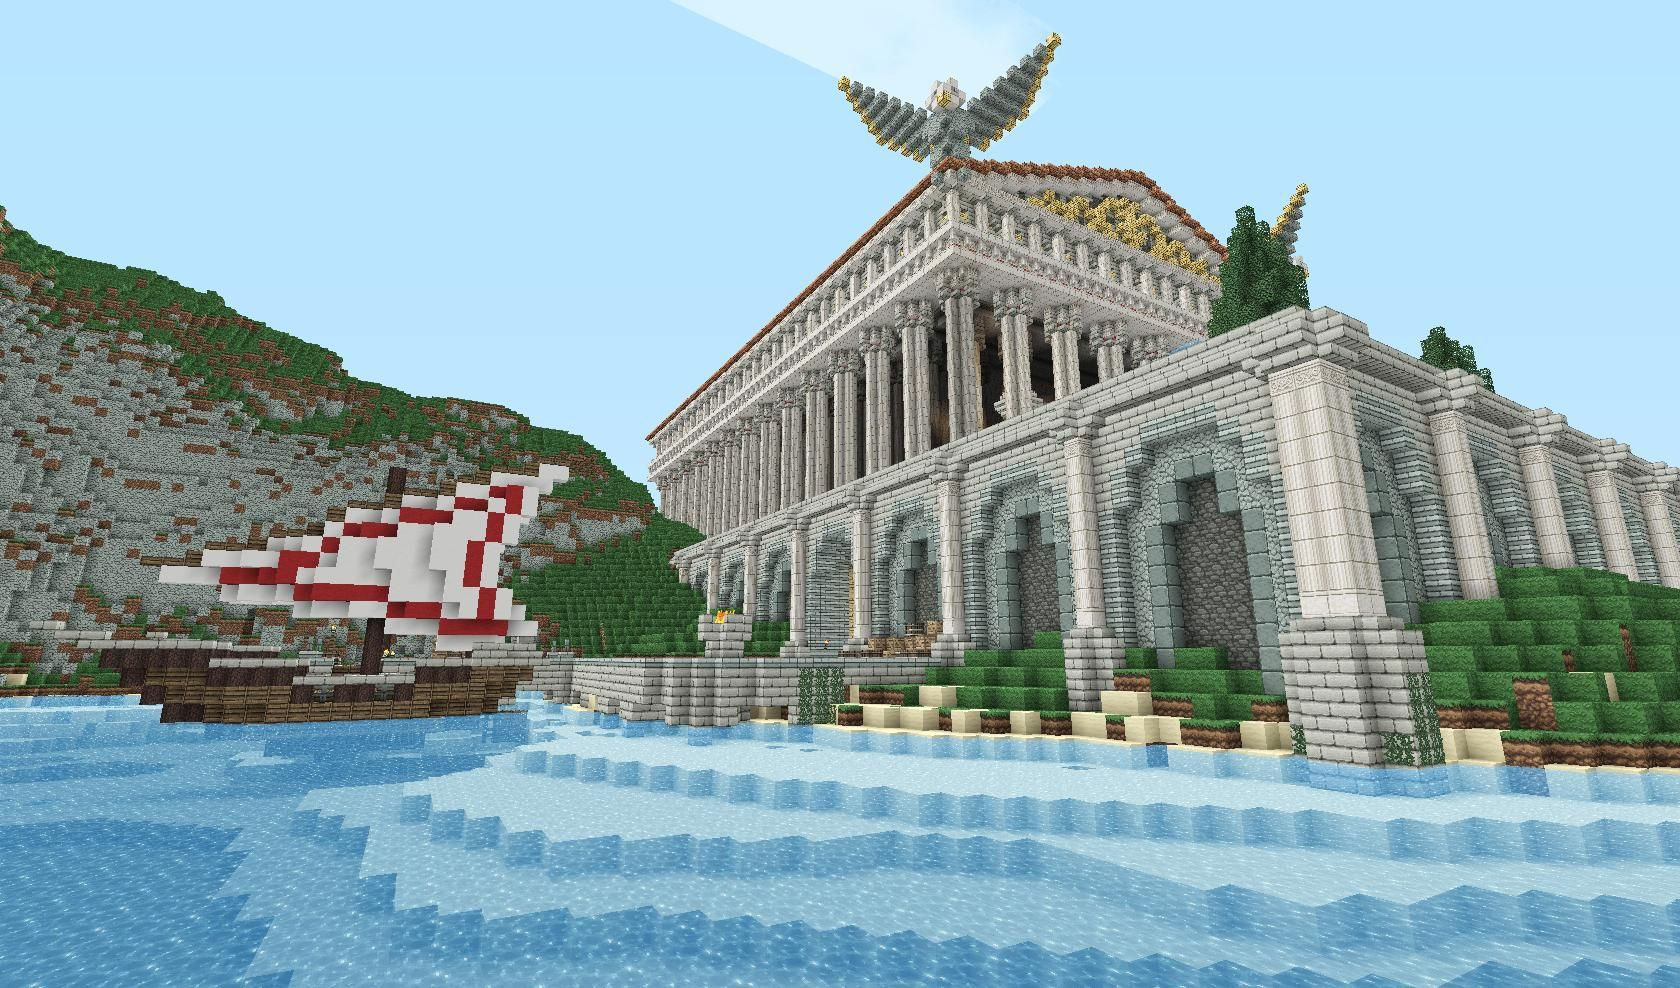 Greek Architecture Minecraft minecraft+roman+structures |  tous nos wallpapers en cliquant